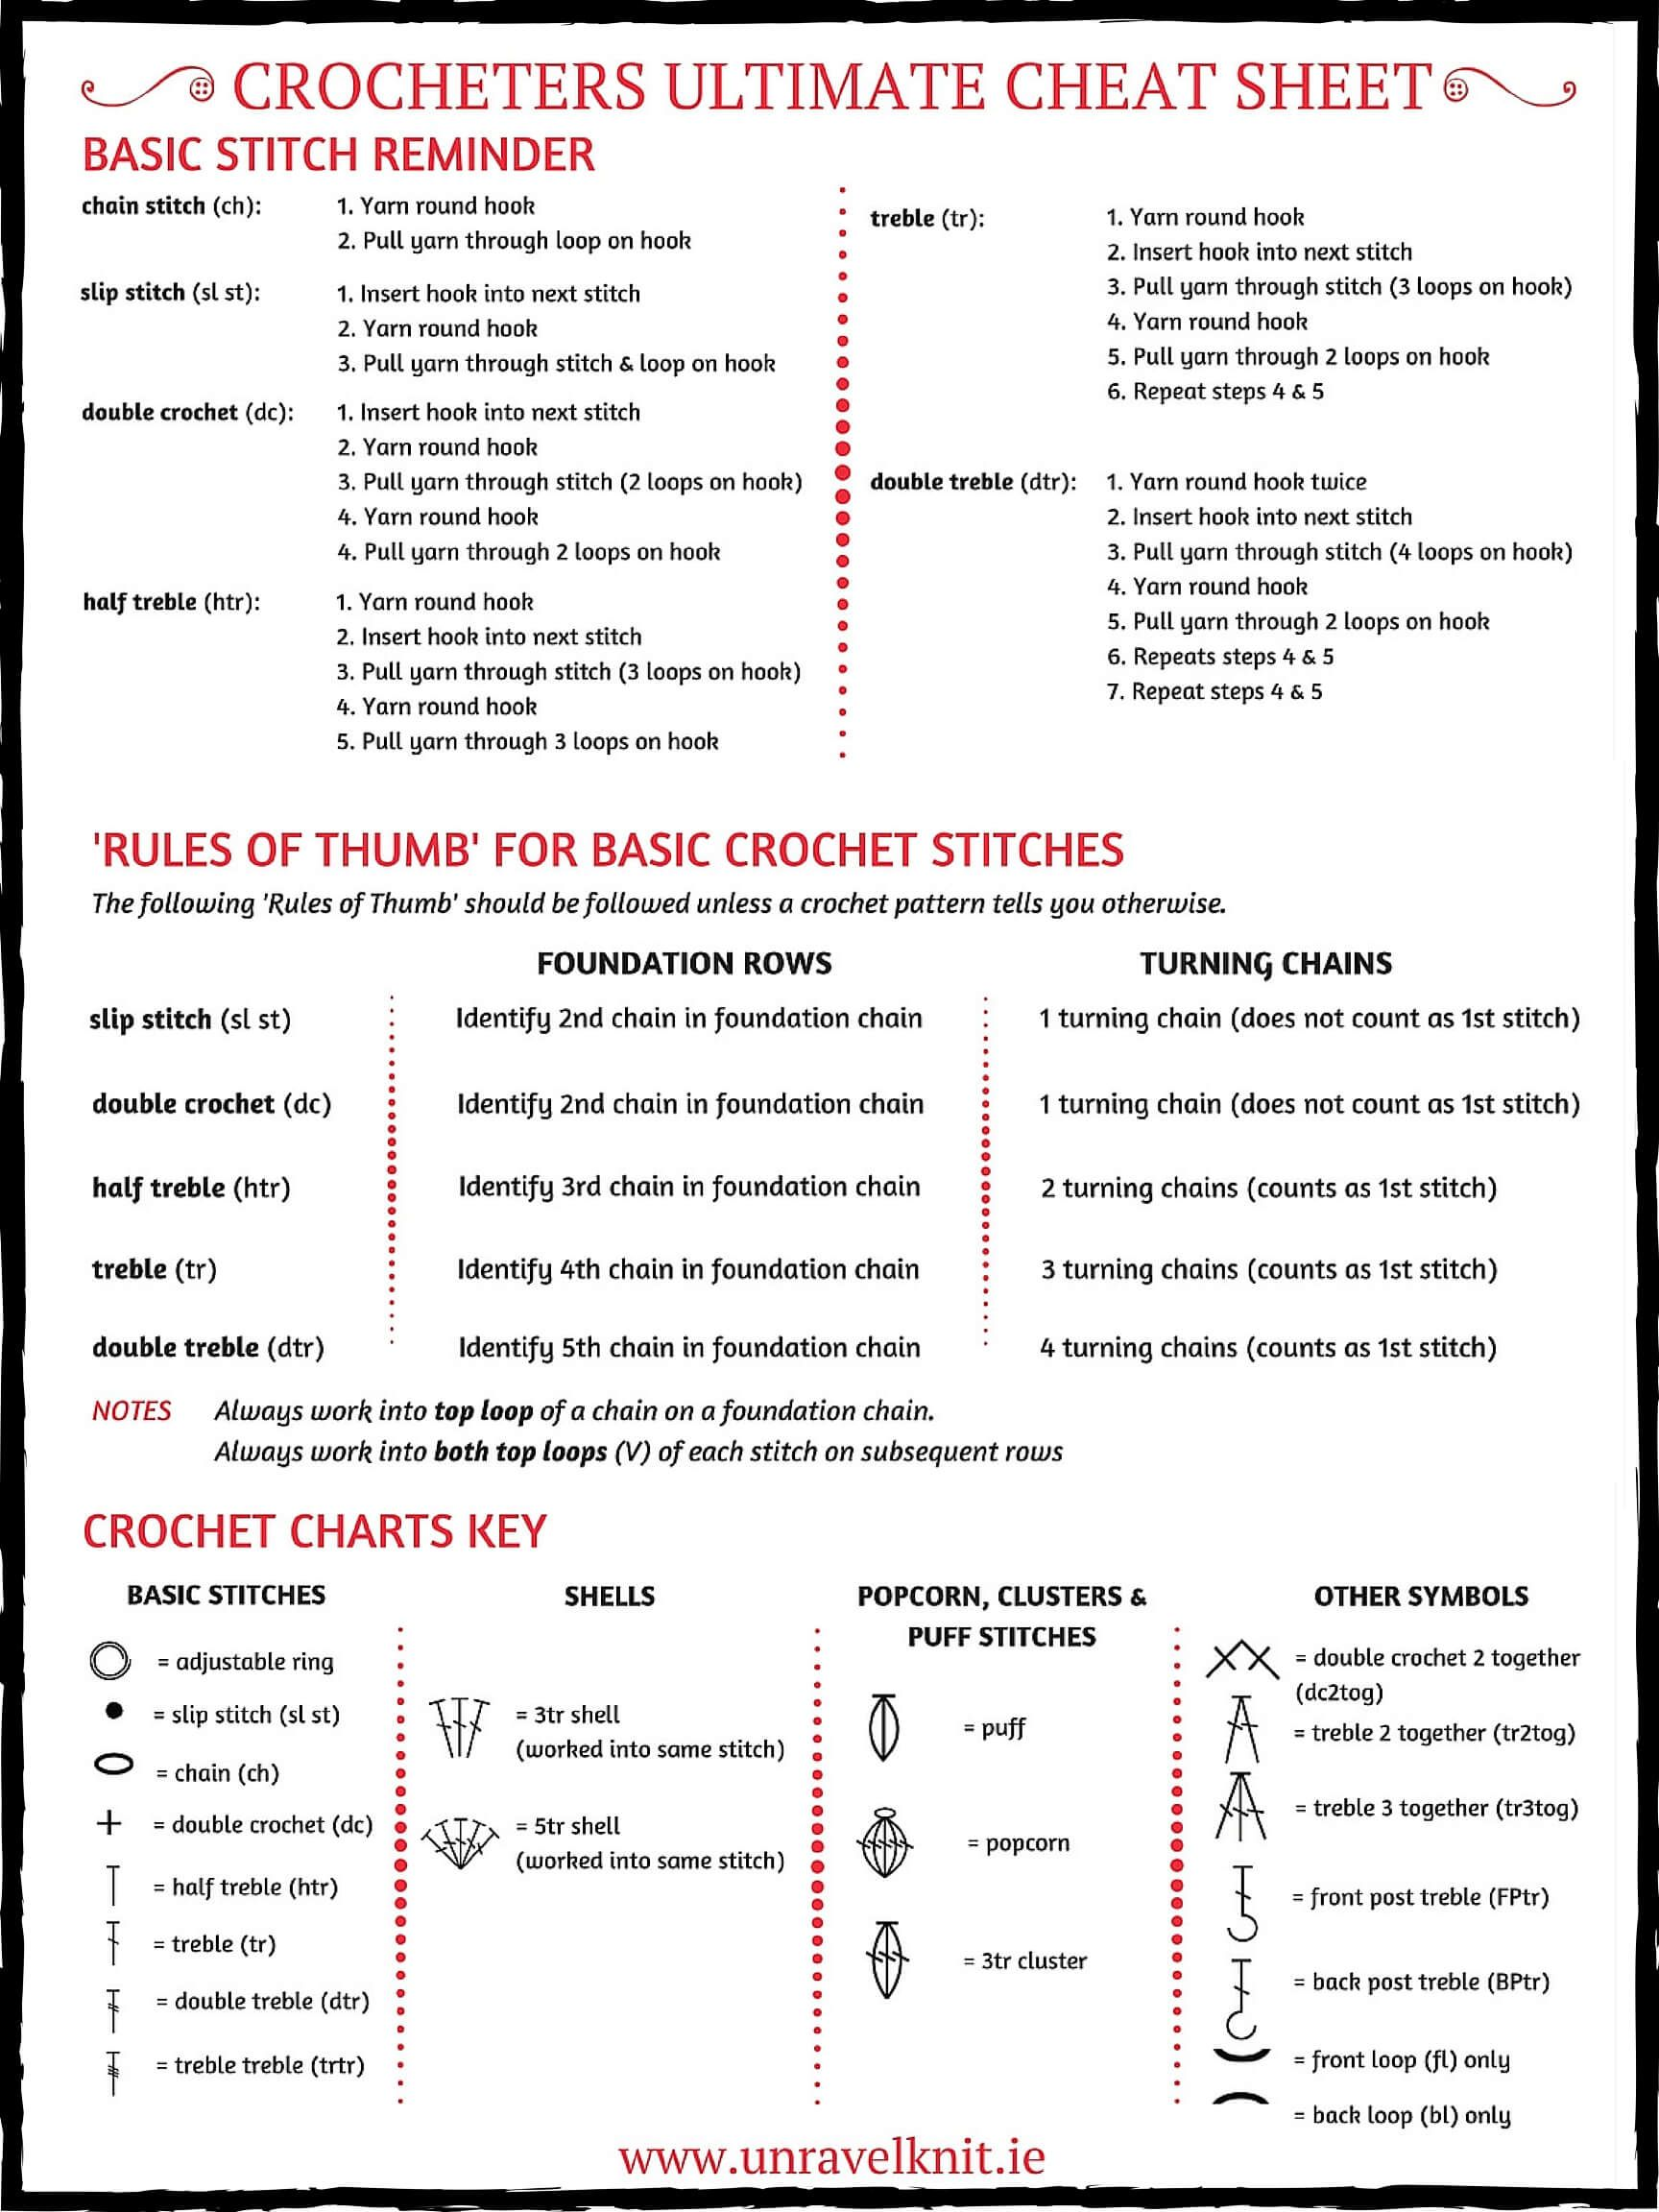 Discussion on this topic: Cheat Sheet: 5 Easy Tricks to Pulling , cheat-sheet-5-easy-tricks-to-pulling/